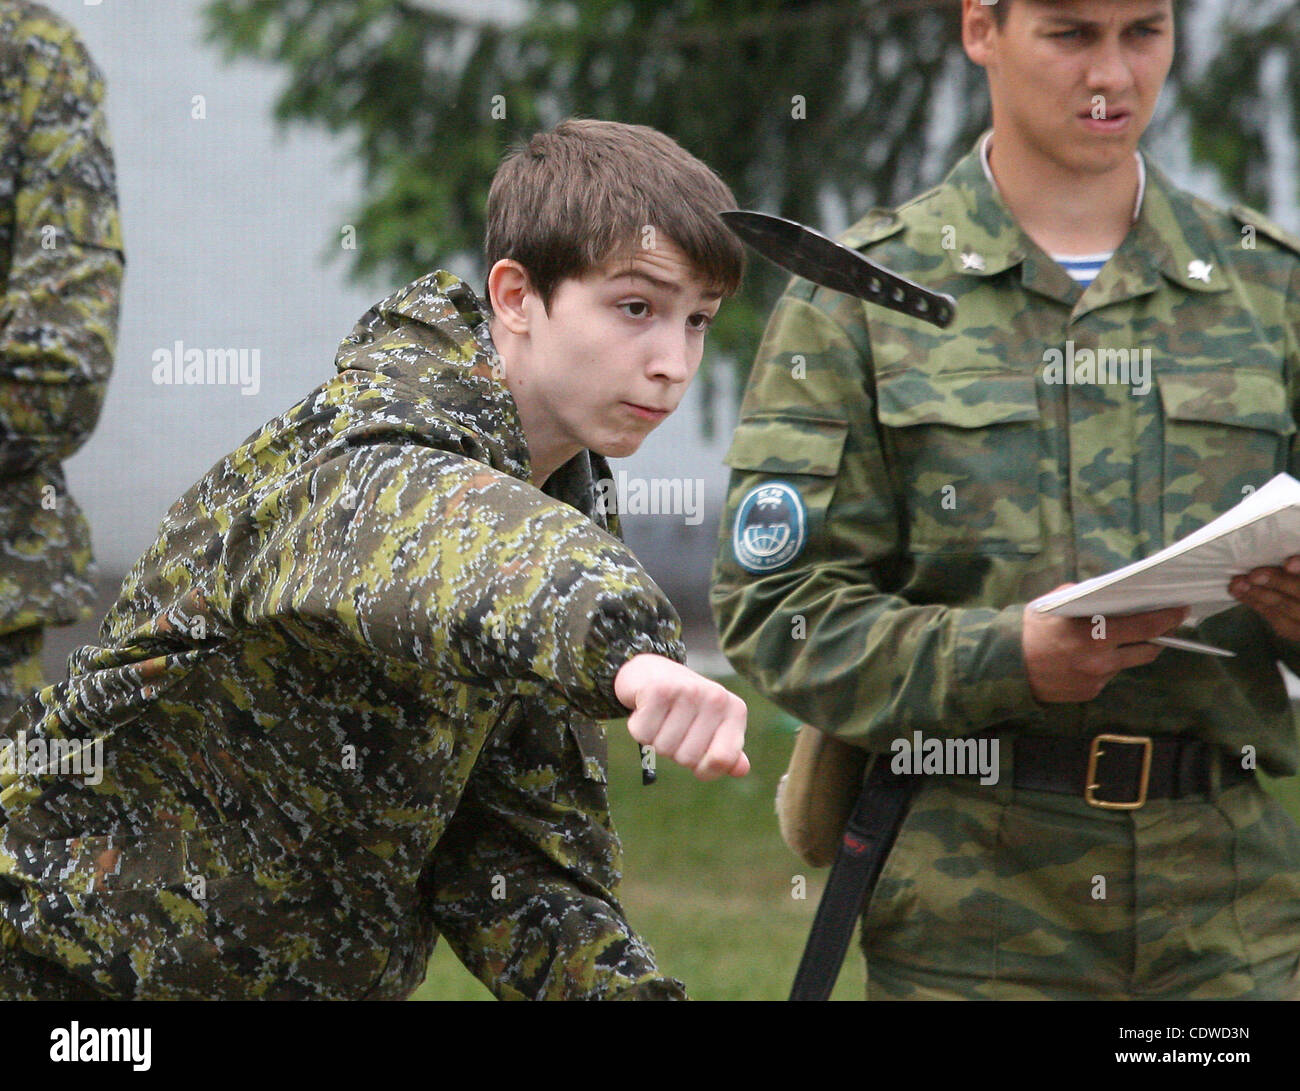 Russian Spetsnaz Photo Russiansoldier001: Russian Teenagers Are Getting Military Skills During The